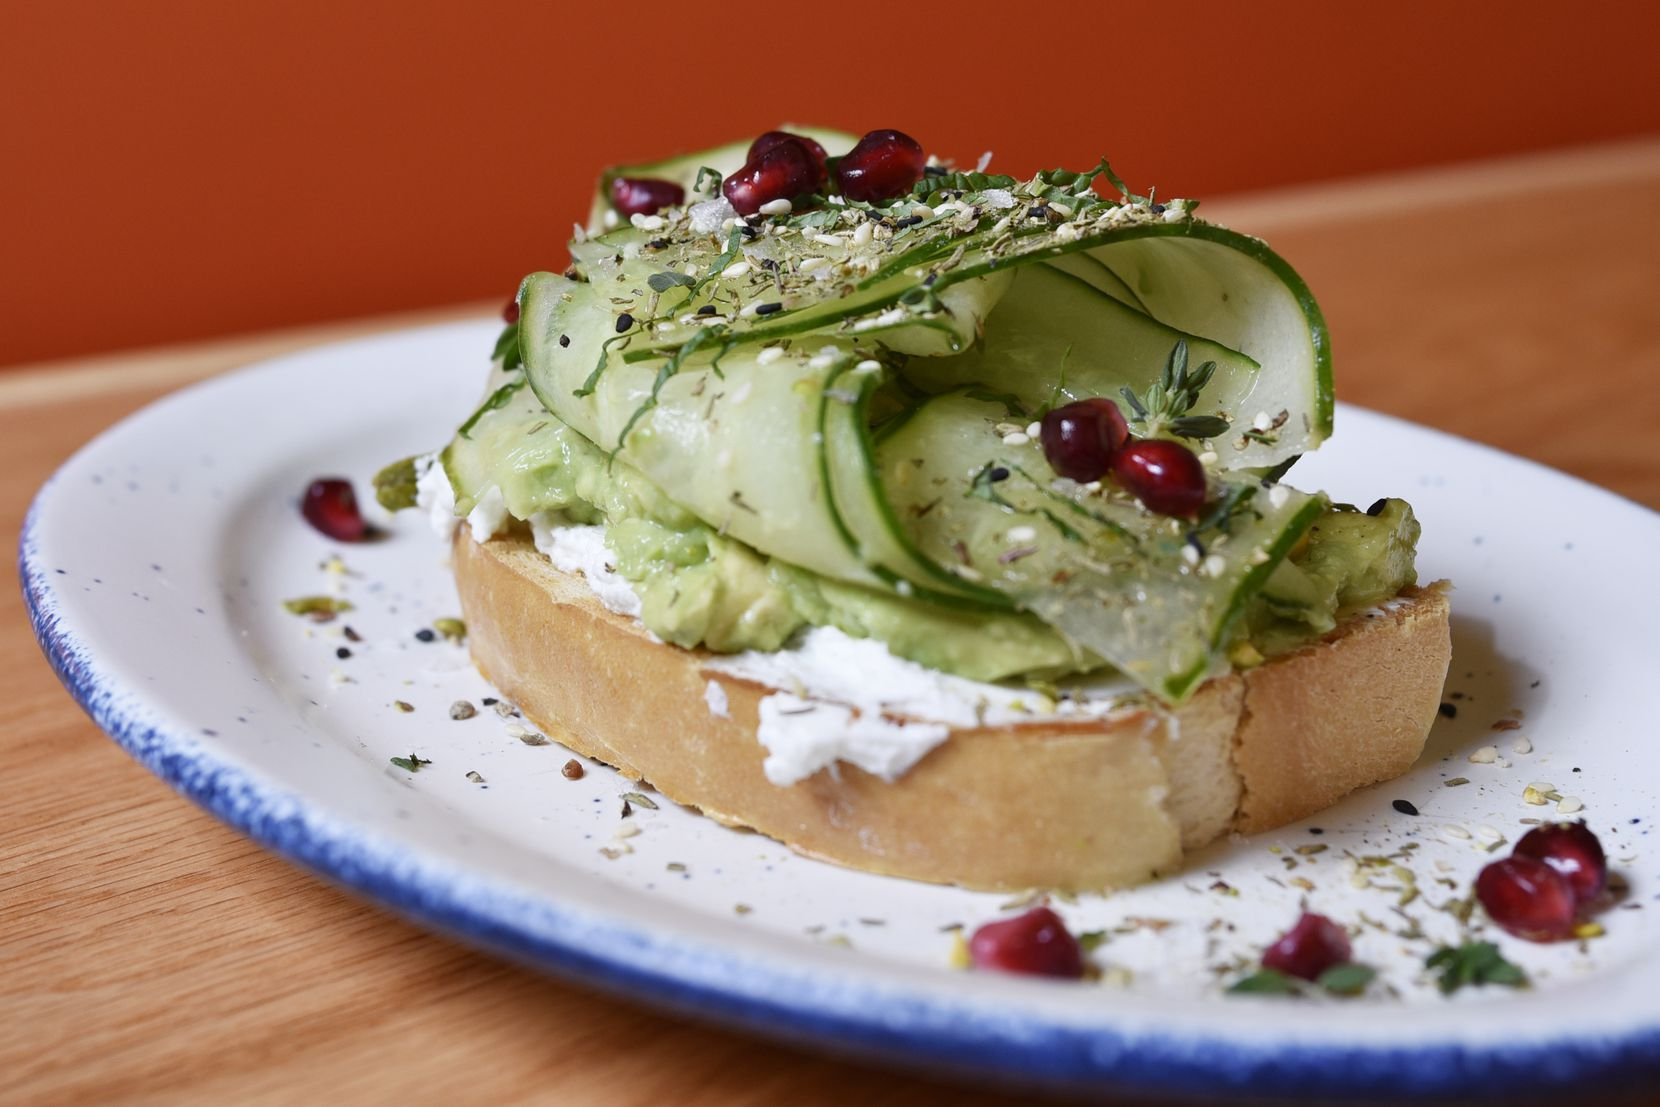 AvoEatery's menu includes six toasts, including this one with za'atar, pistachios, pomegranate and labneh.